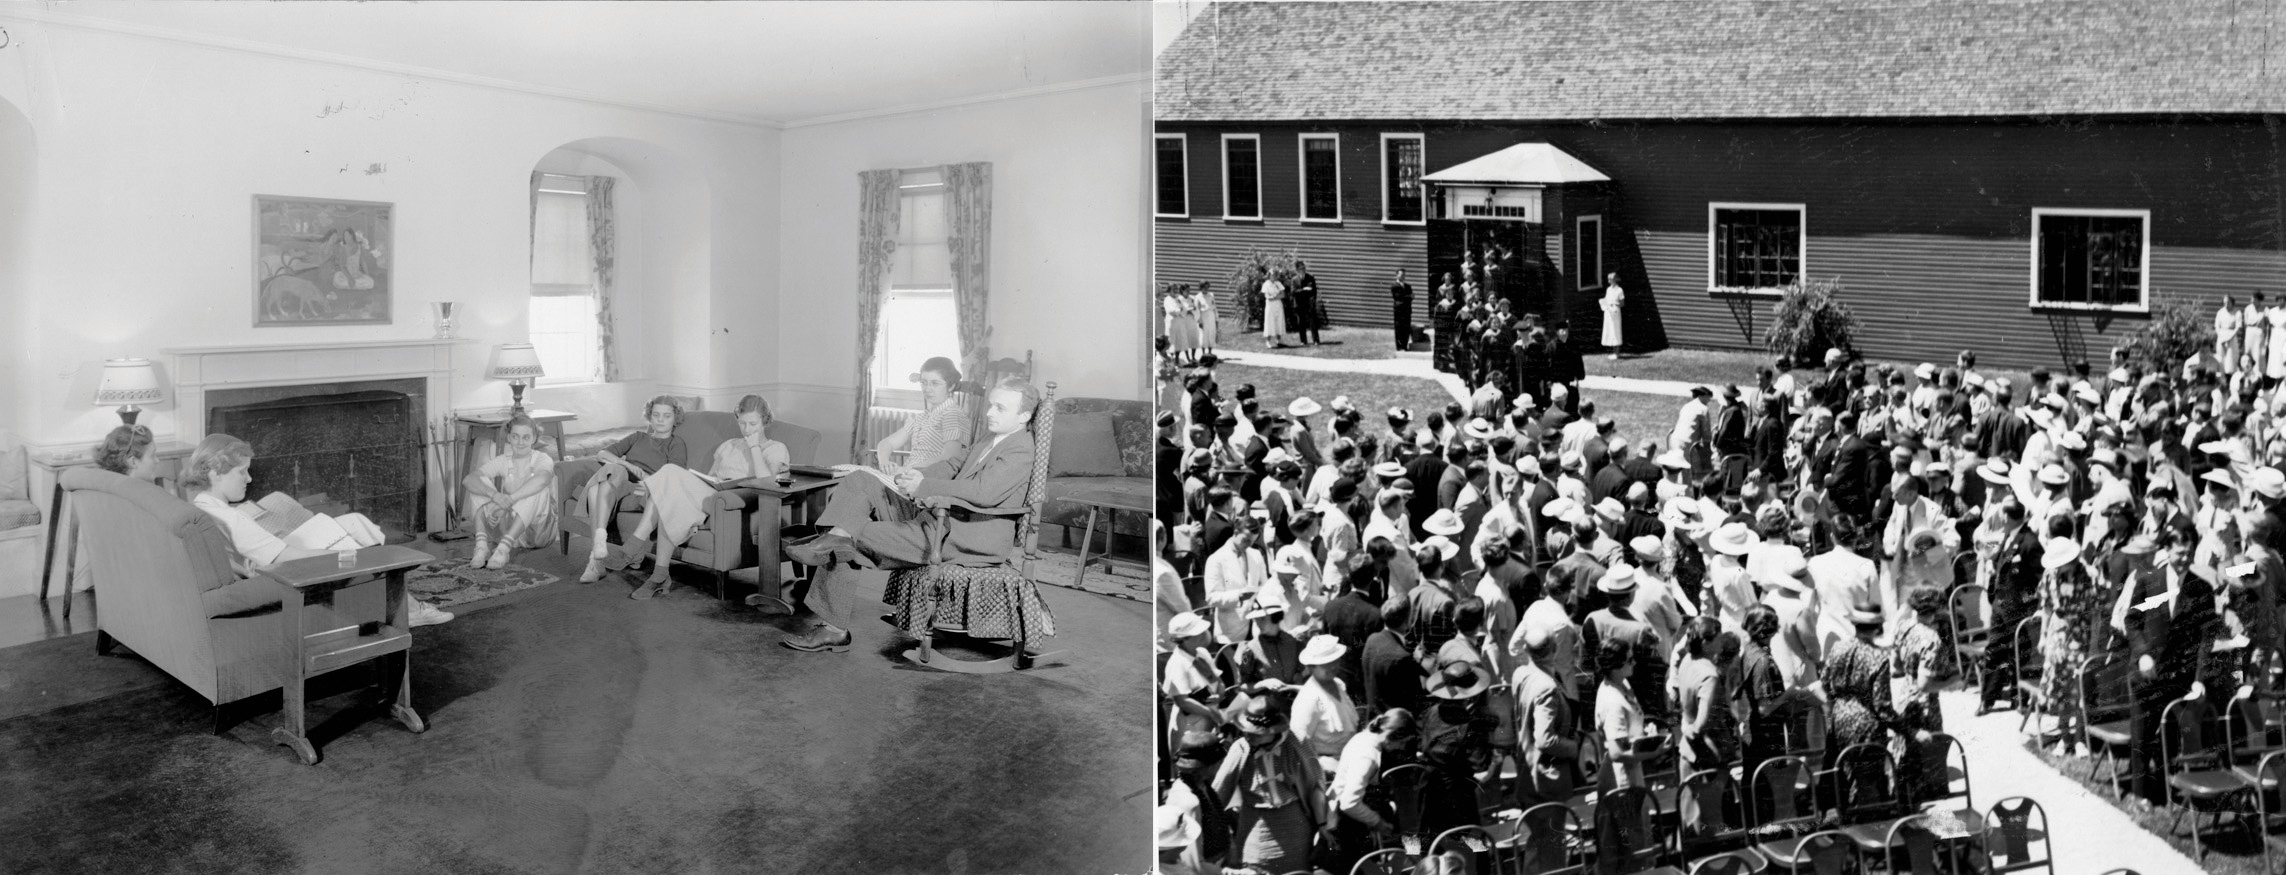 political culture and socialization women at bennington college in the 1930s became active in community affairs as a result of their political socialization in college